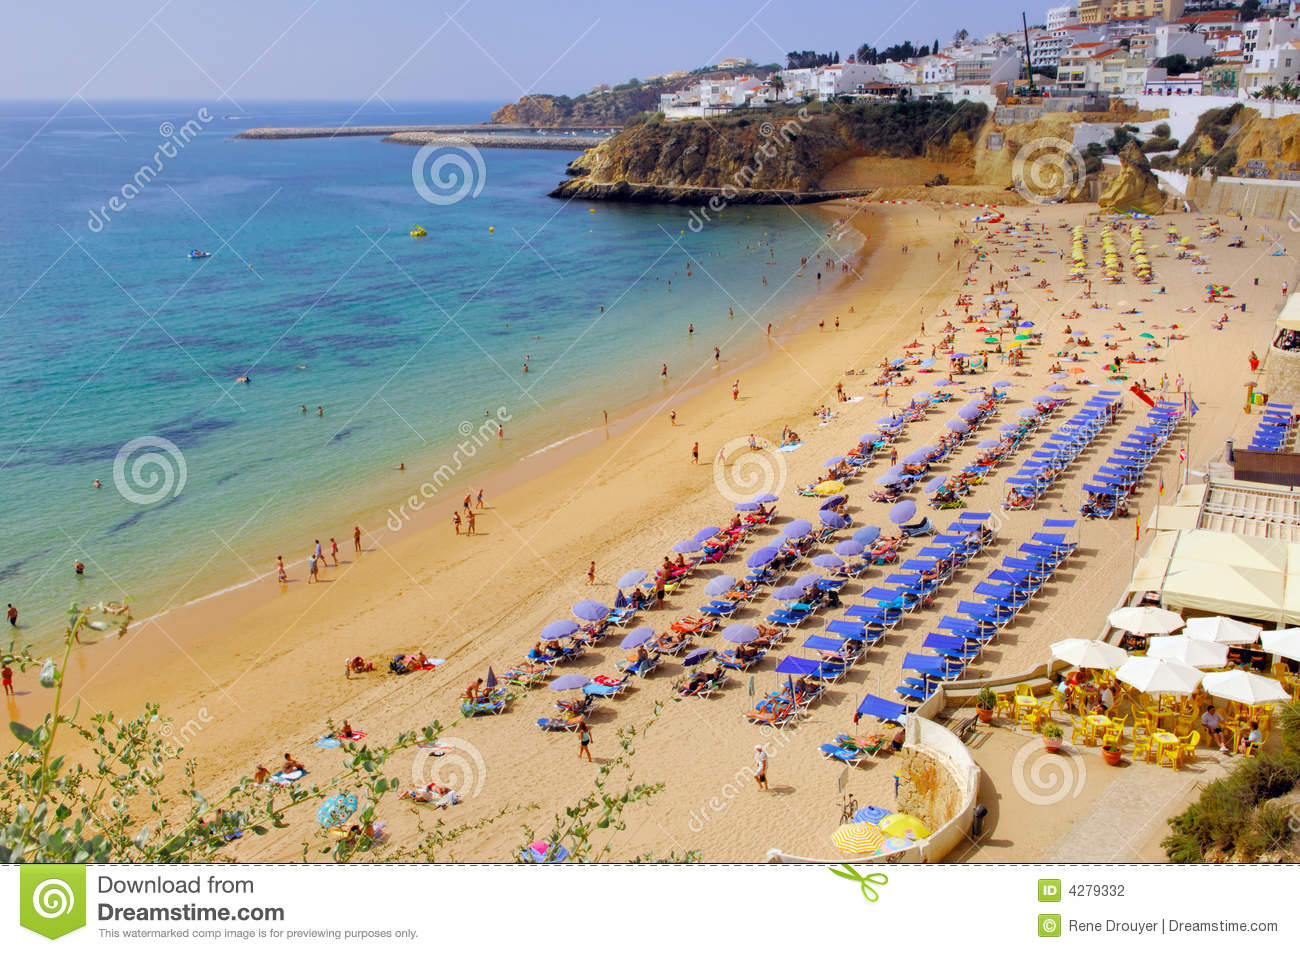 Portugal, area of Algarve, Albufeira: beach